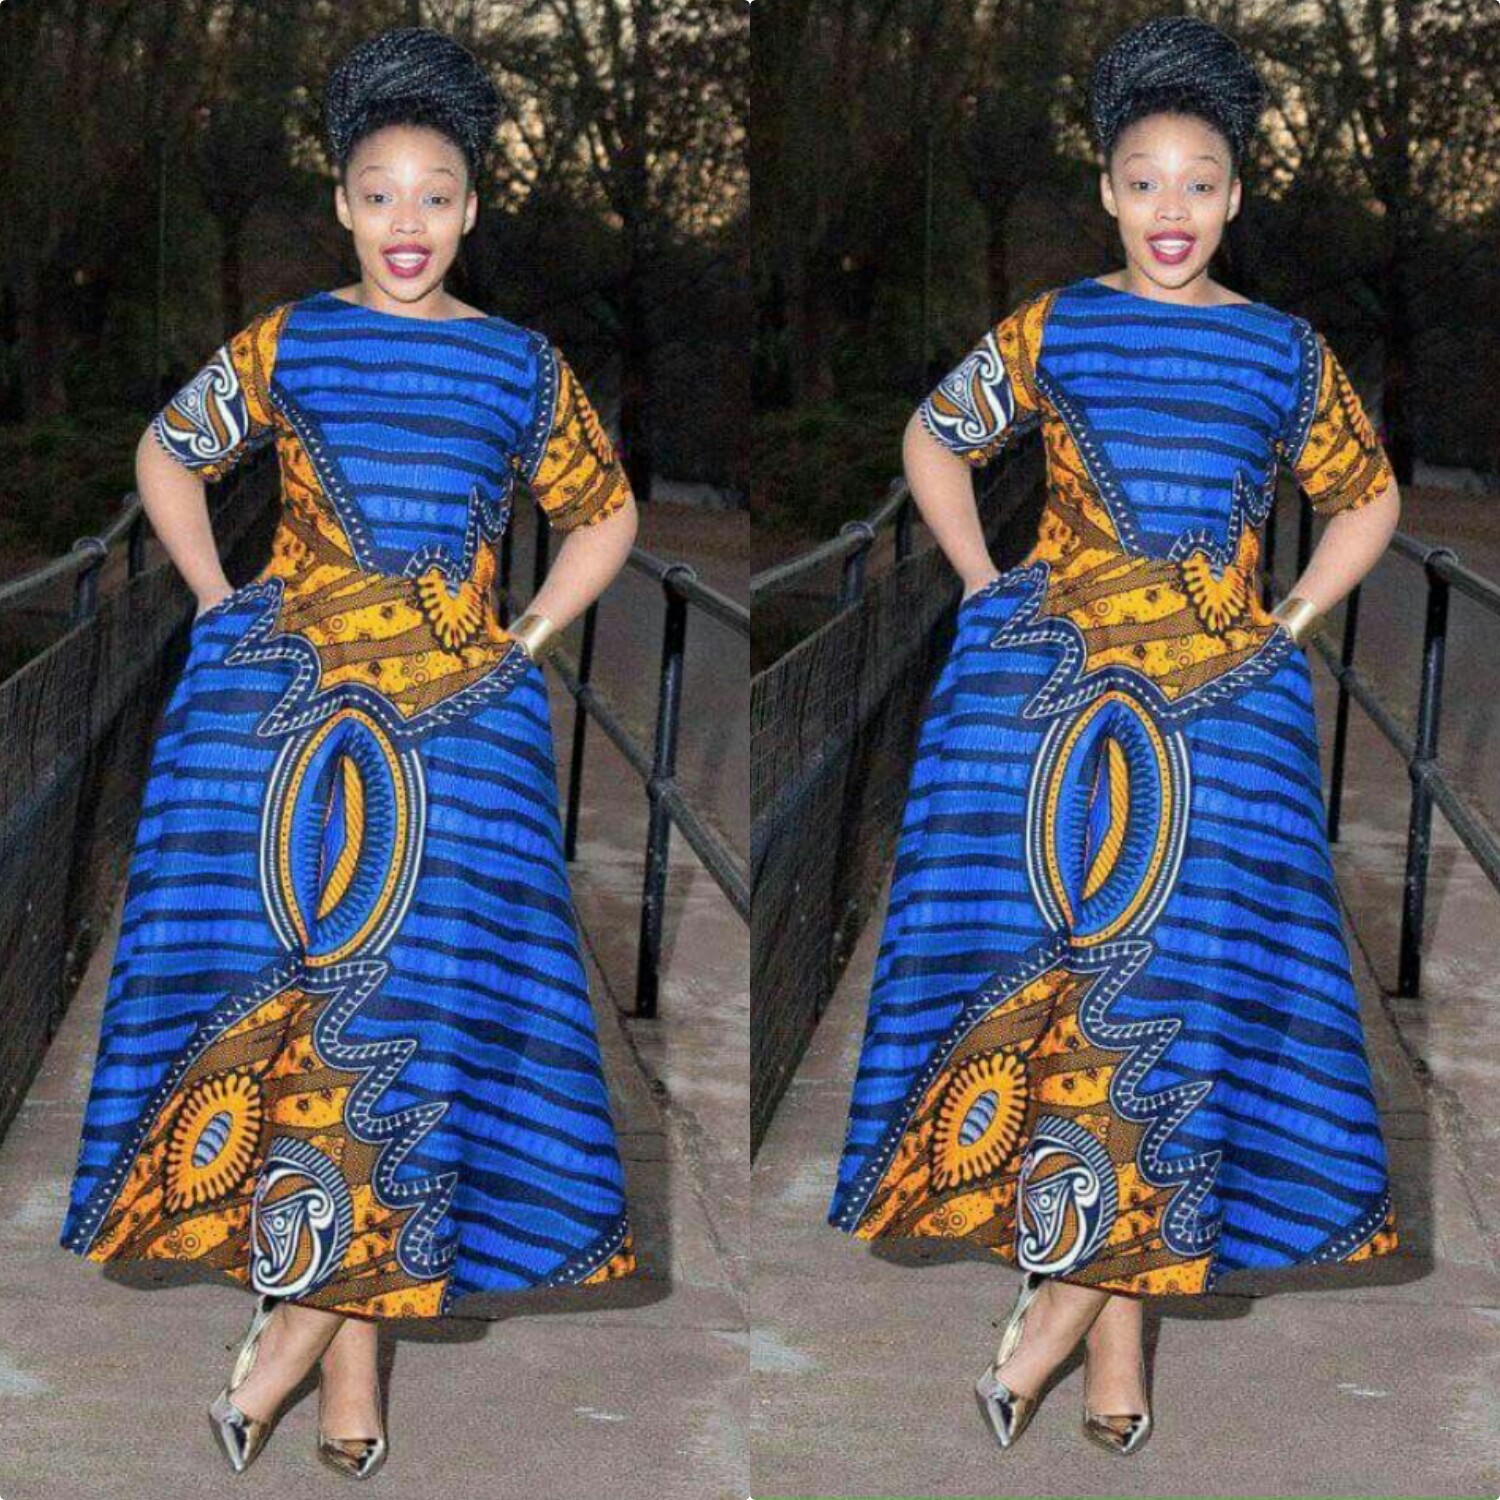 Trendy Kitenge Dress Designs That Will Wow You!